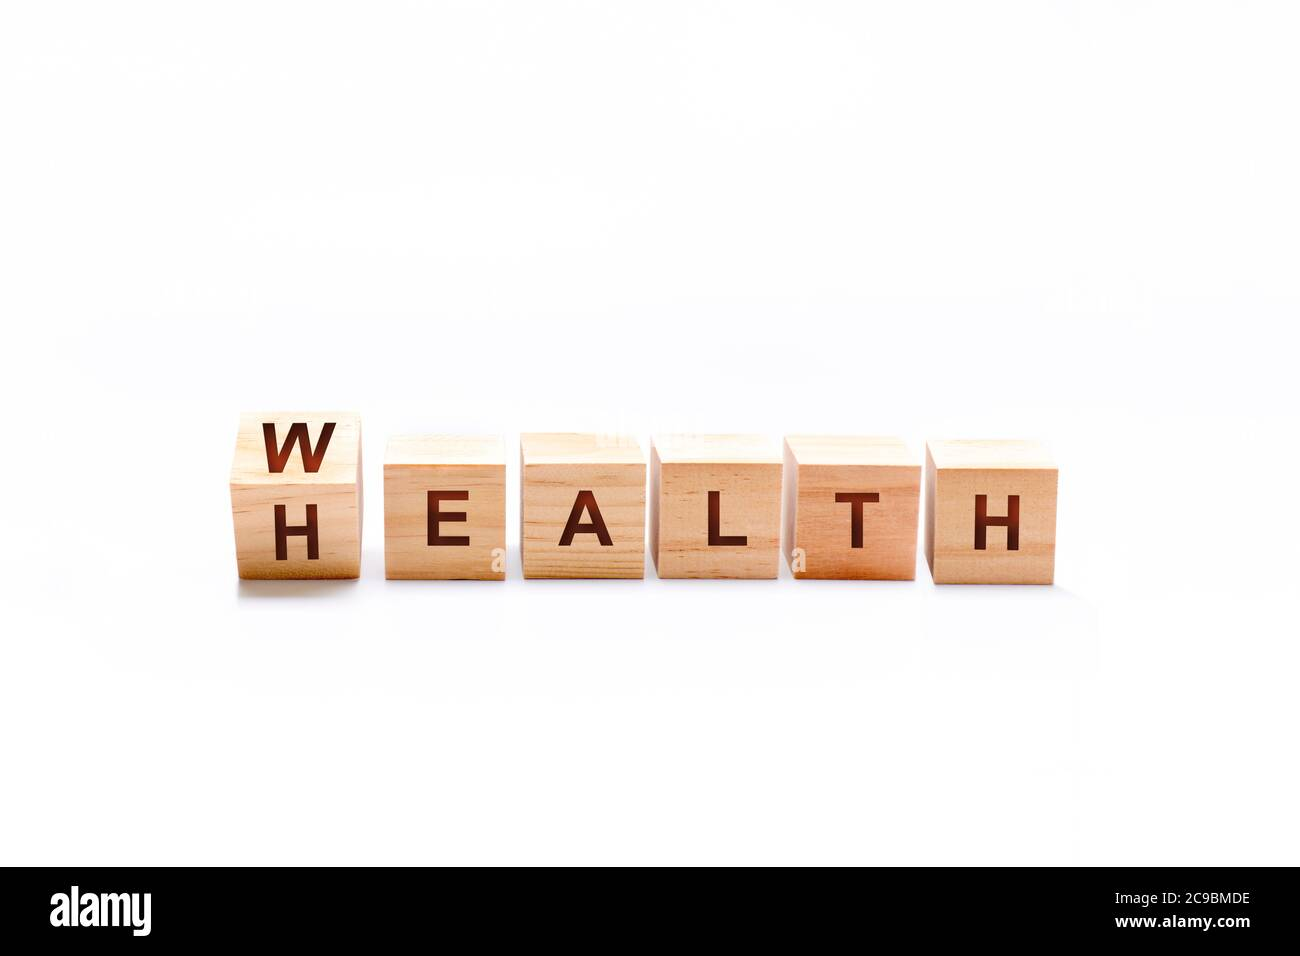 Wooden bucket spinning changing the word HEALTH to WEALTH. Investment in life insurance and healthcare concept Stock Photo